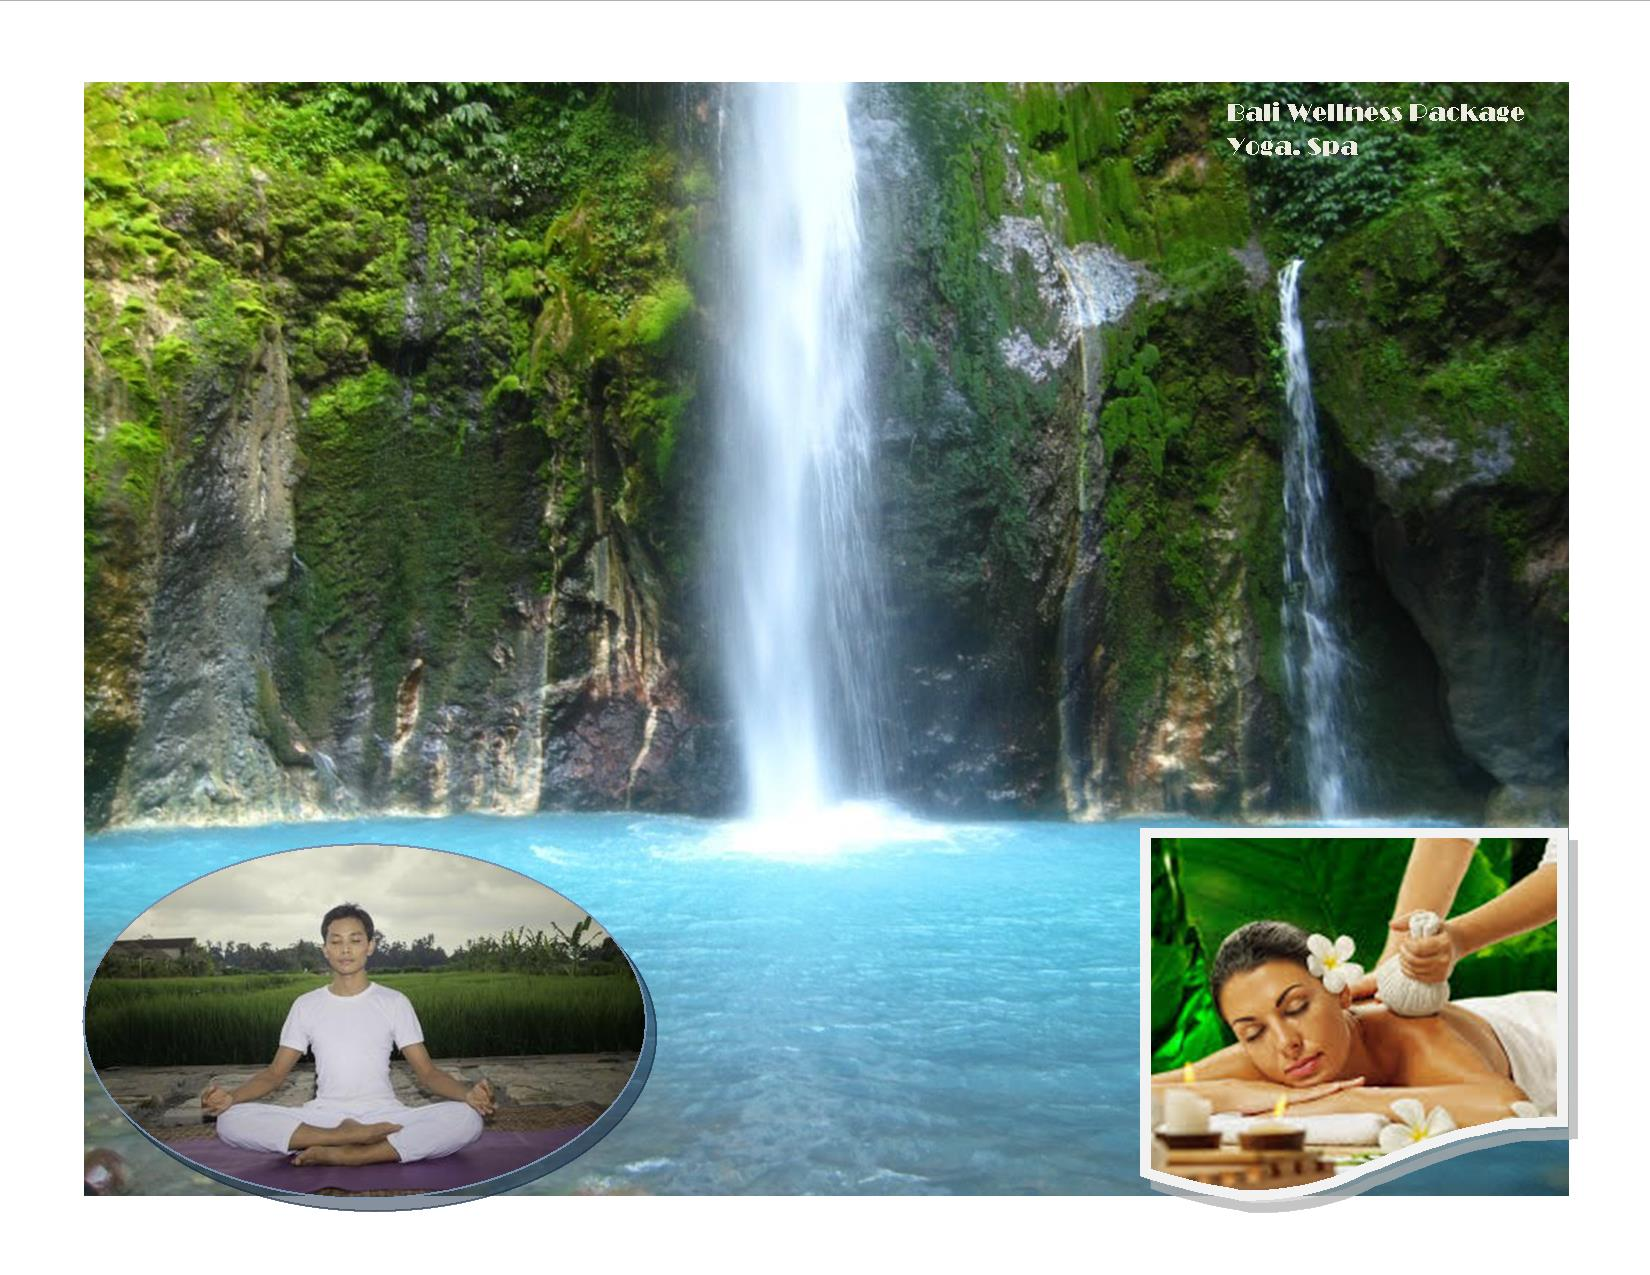 Bali Wellness Package 14 Days 13 Nights